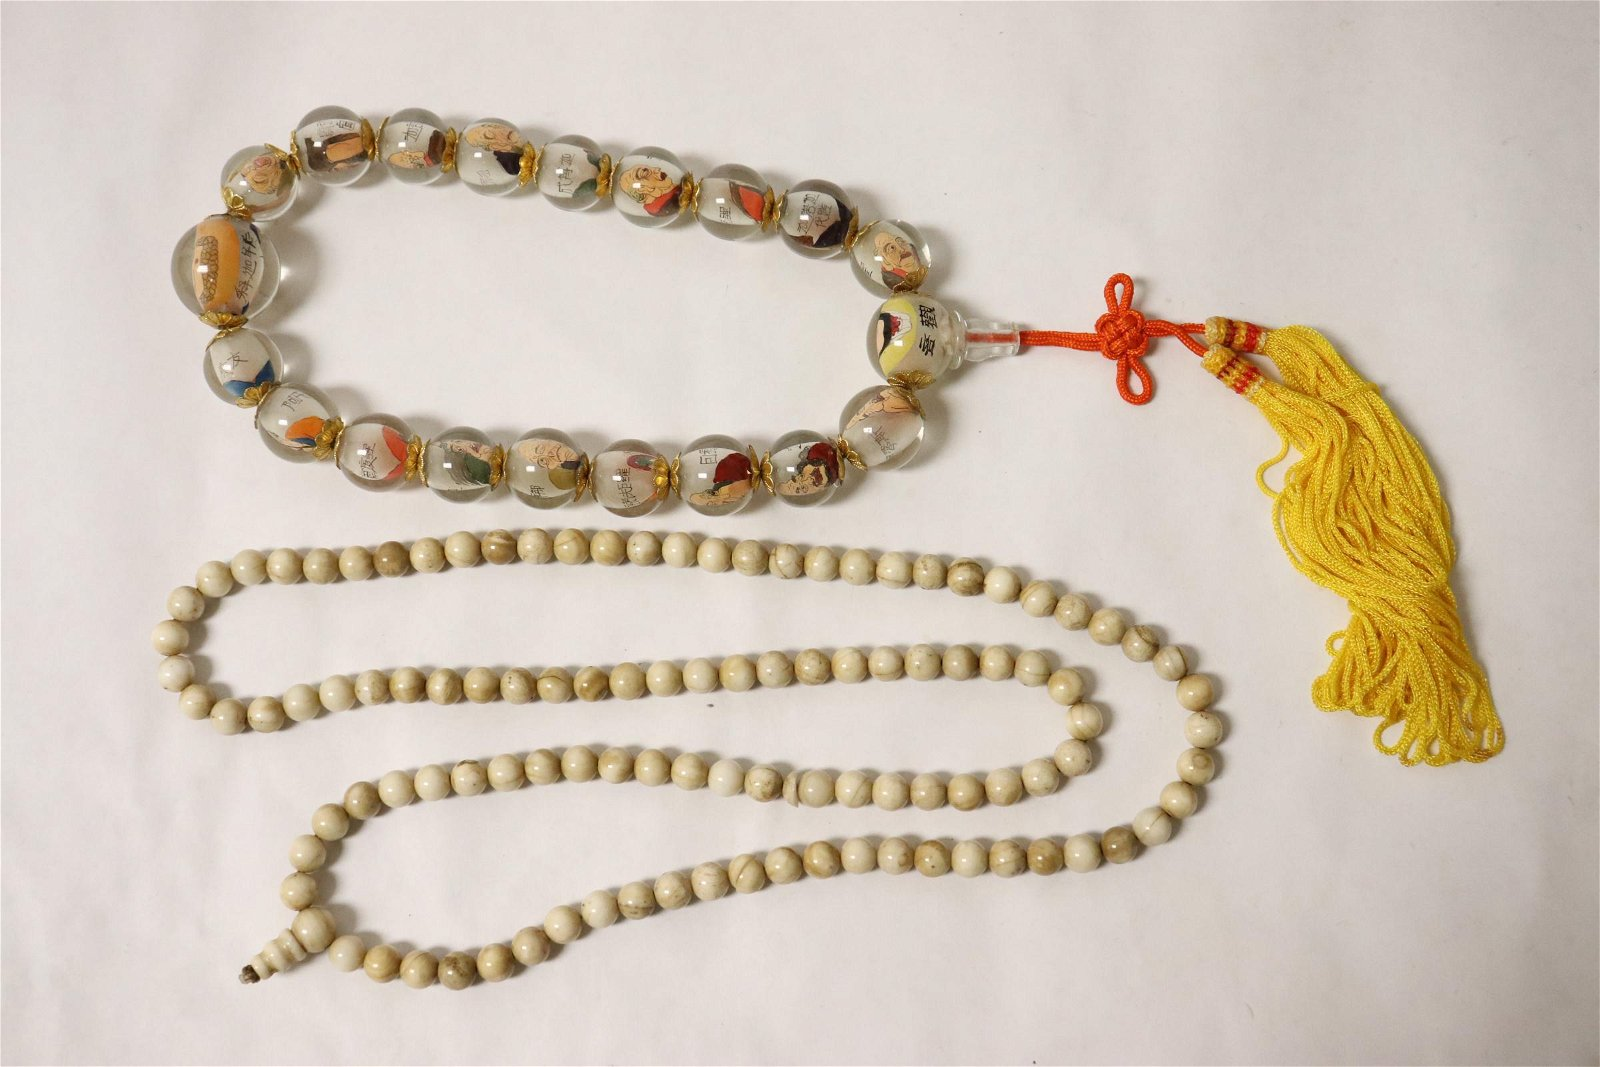 A jade like necklace, & a inside painted bead necklace